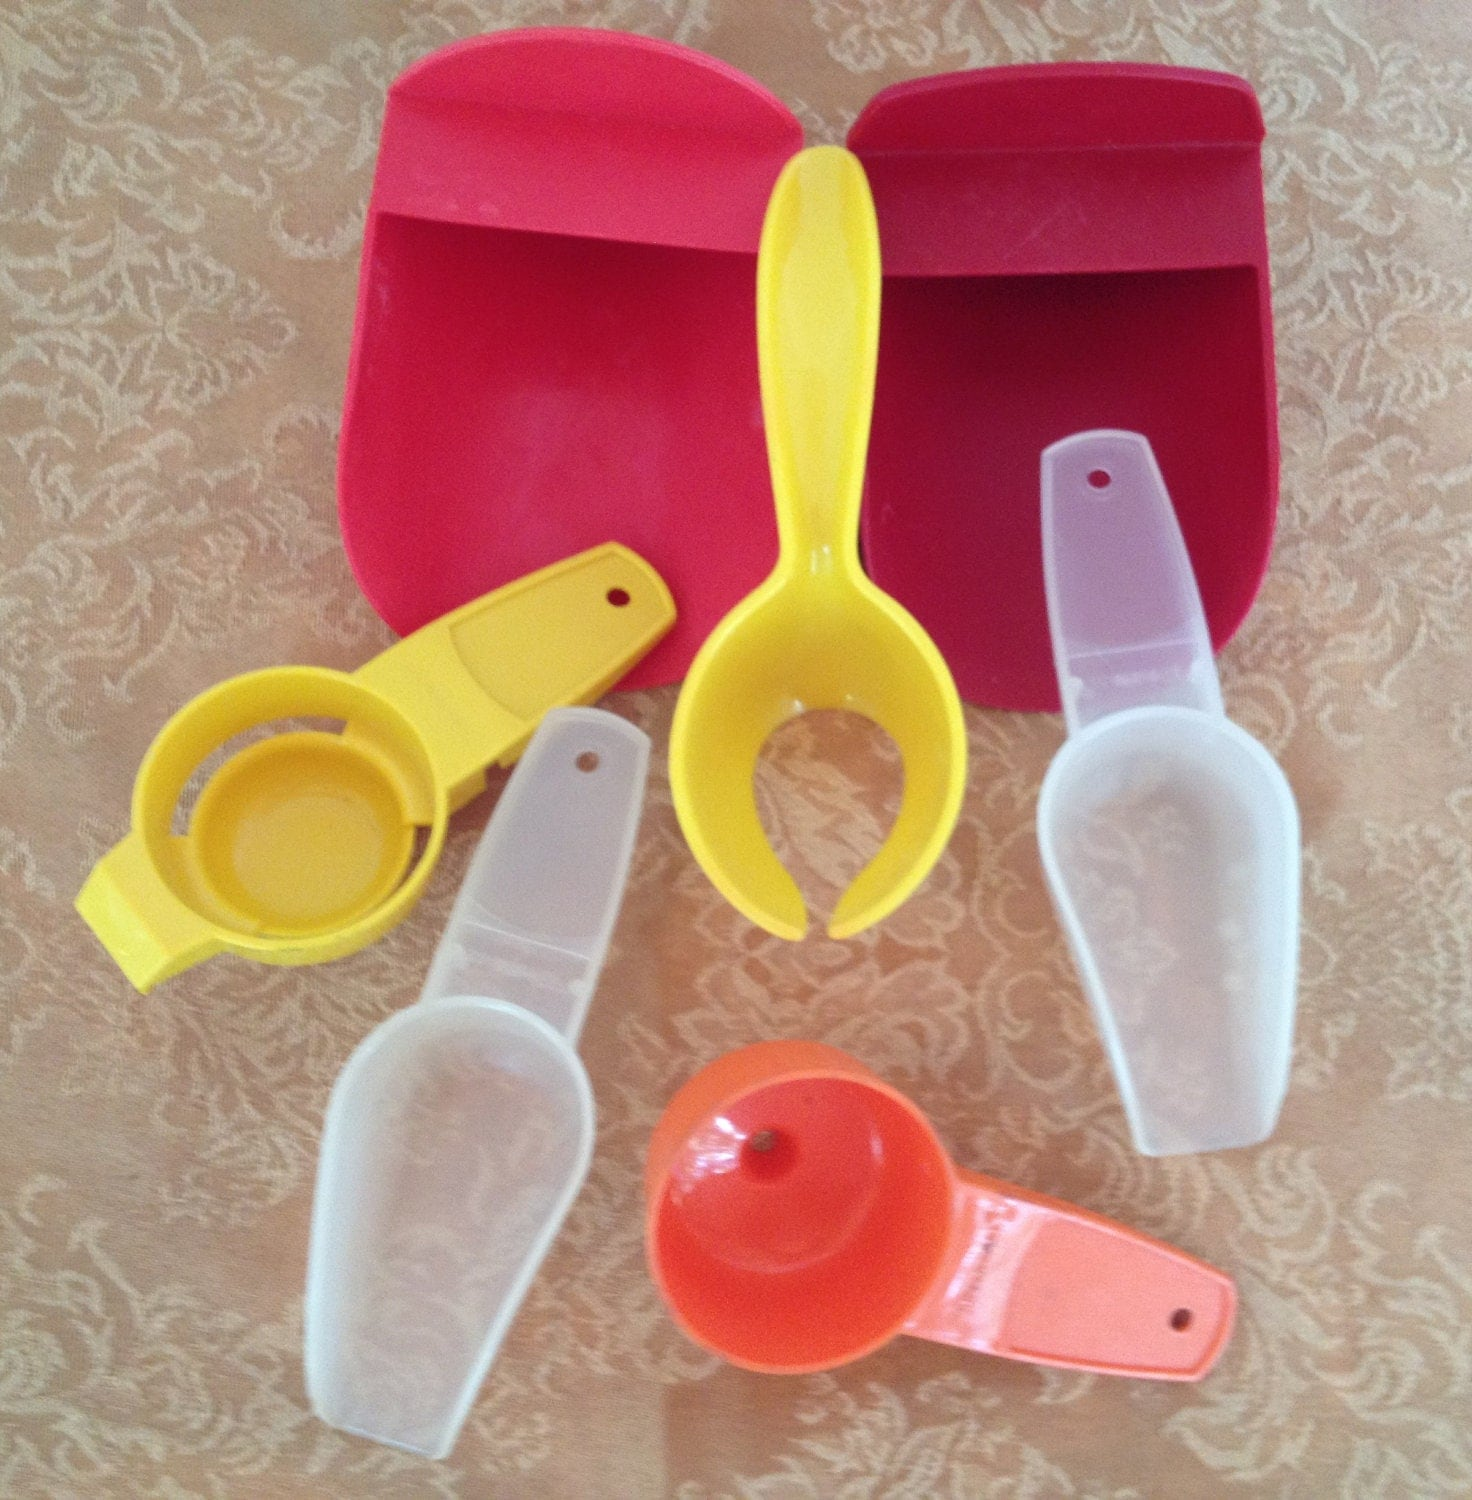 Tupperware Gadgets And Utensils